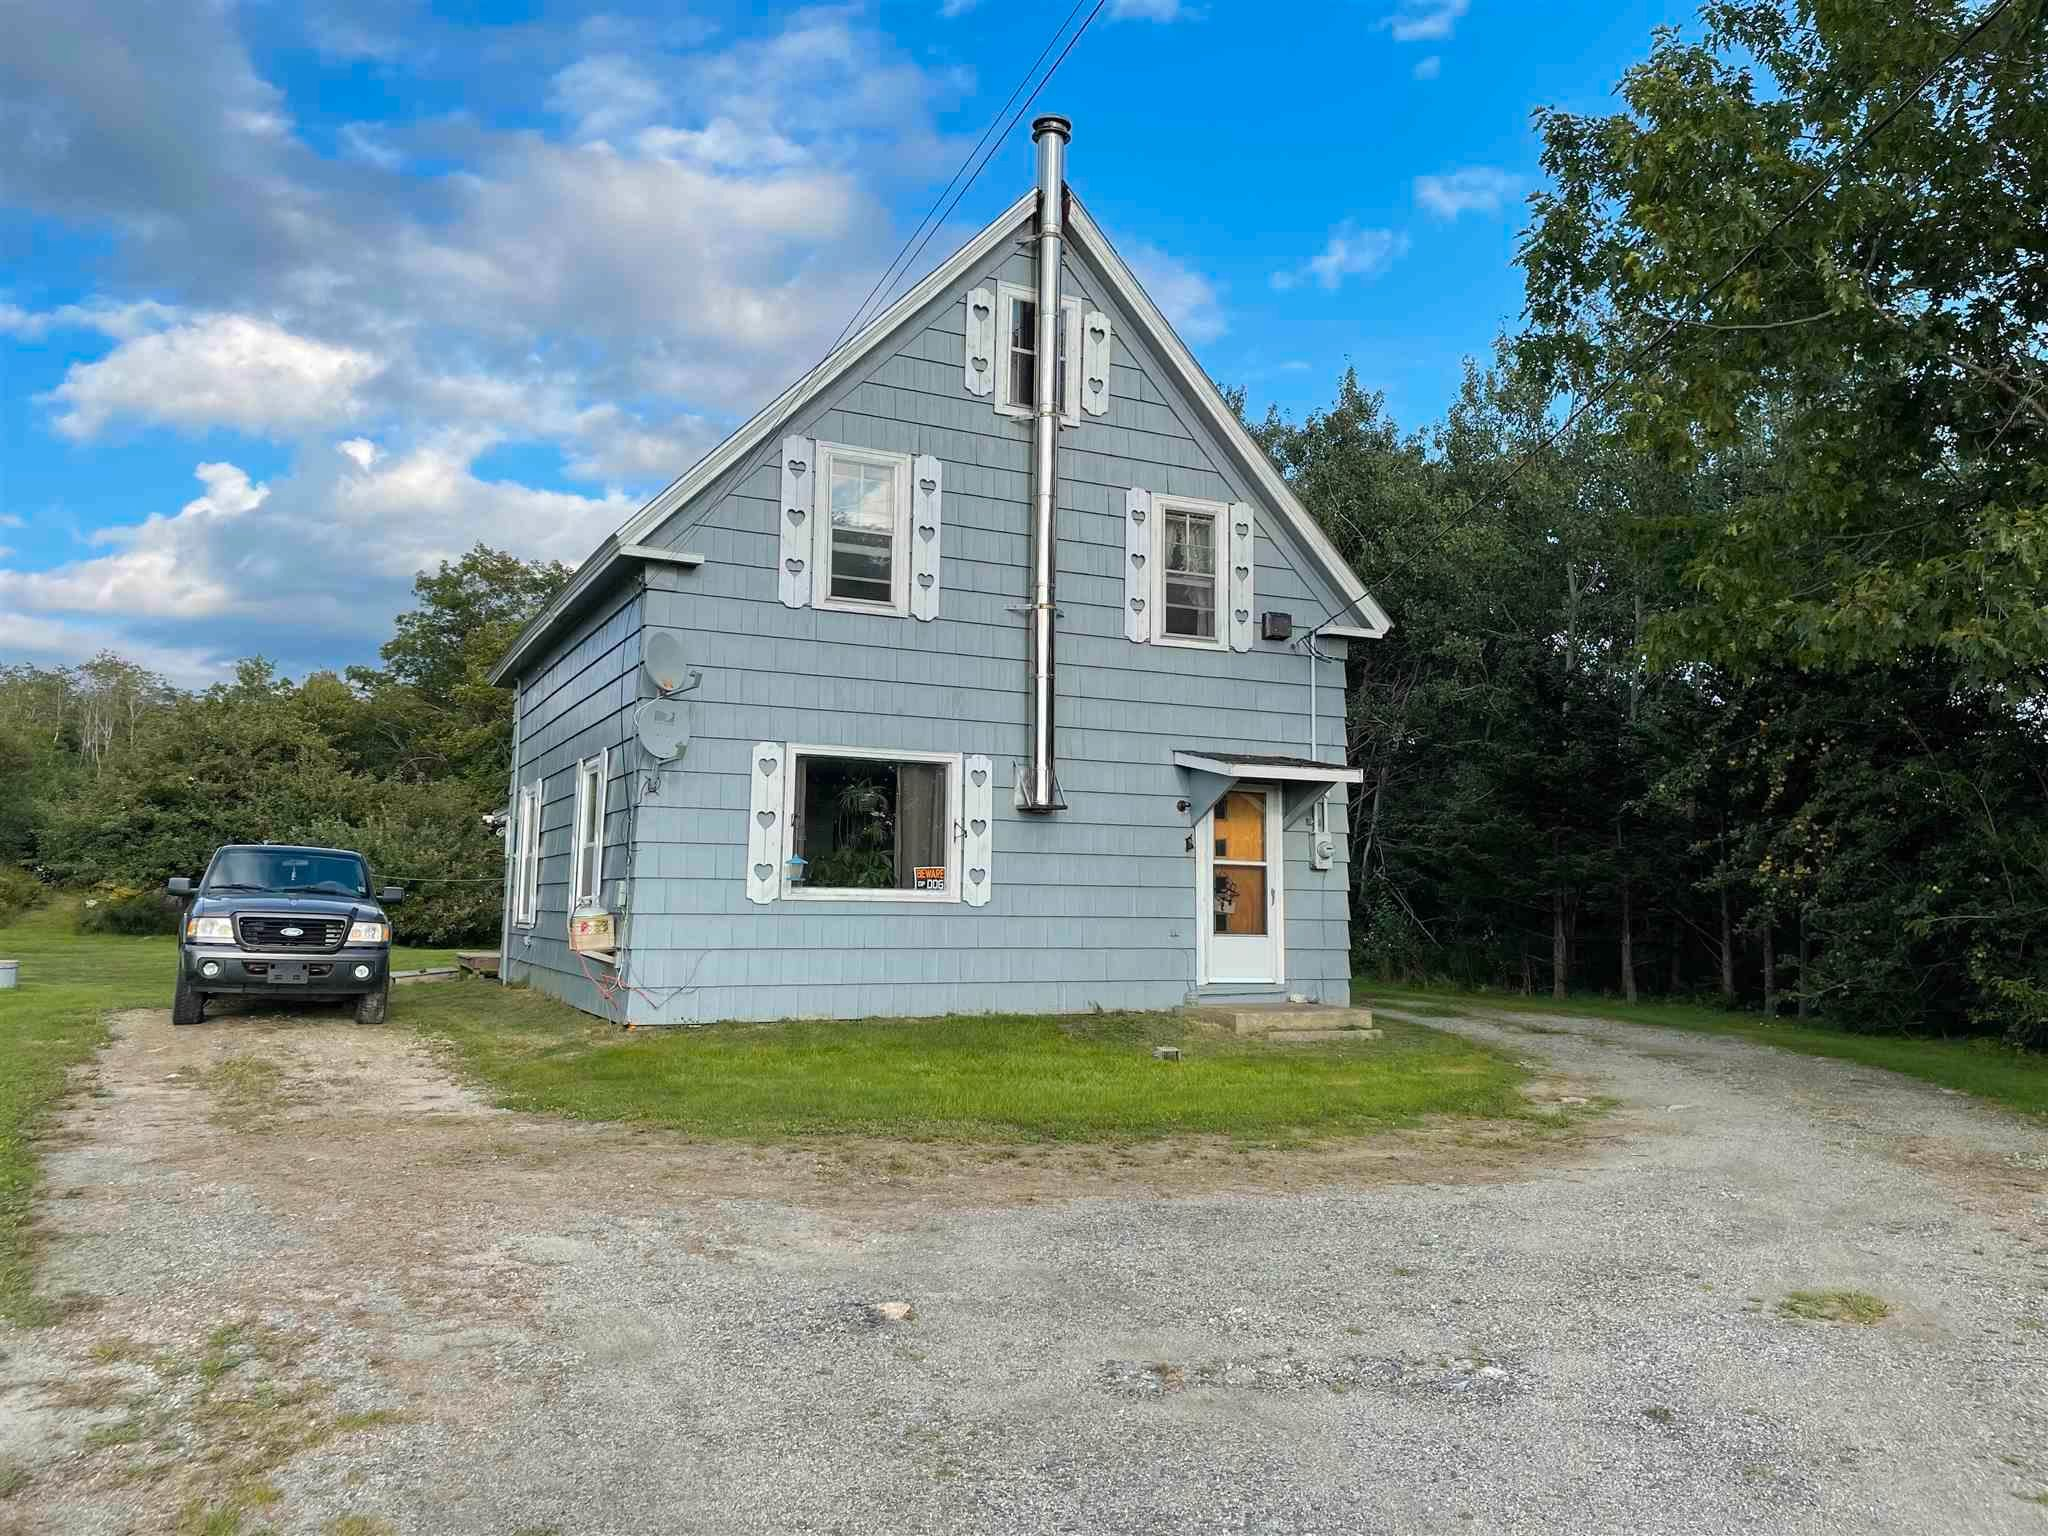 Main Photo: 1617 Sandy Point Road in Sandy Point: 407-Shelburne County Residential for sale (South Shore)  : MLS®# 202124368